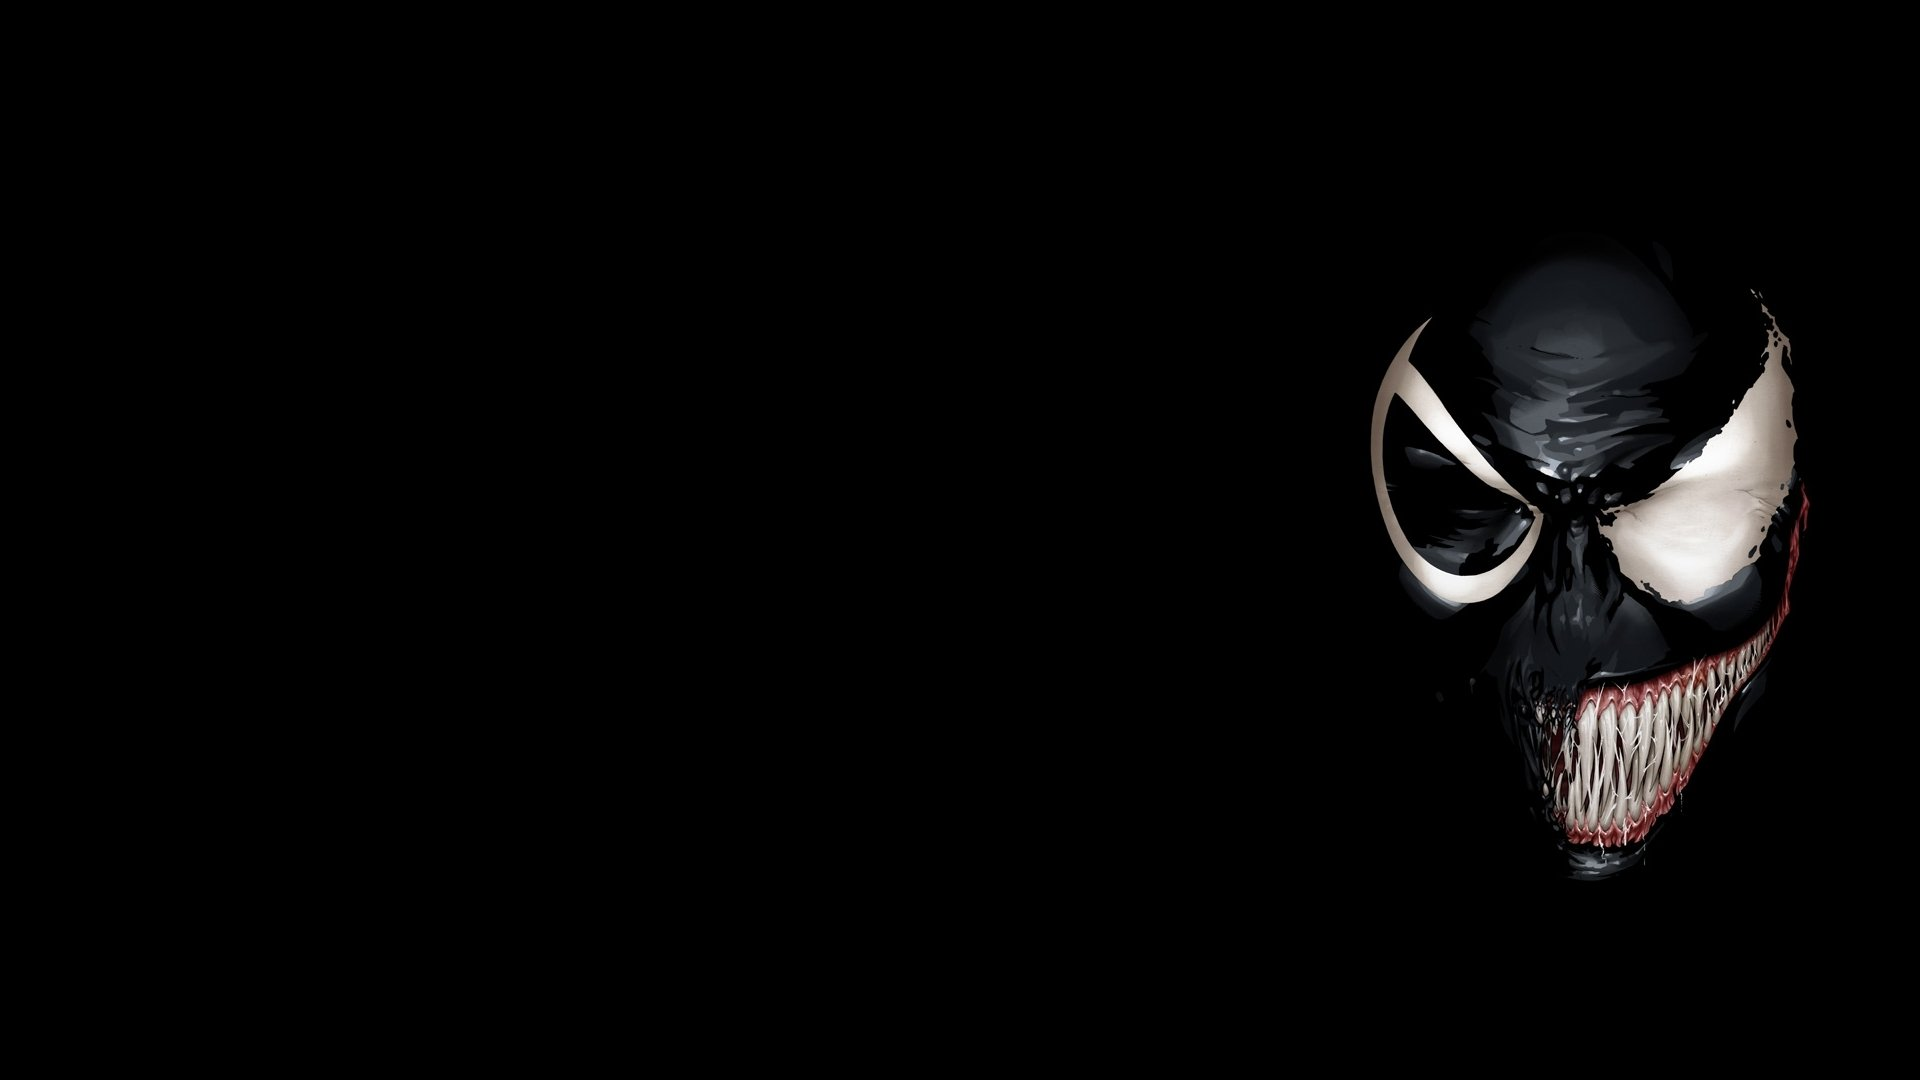 Venom hd wallpaper background image 1920x1080 id - Venom hd wallpaper android ...